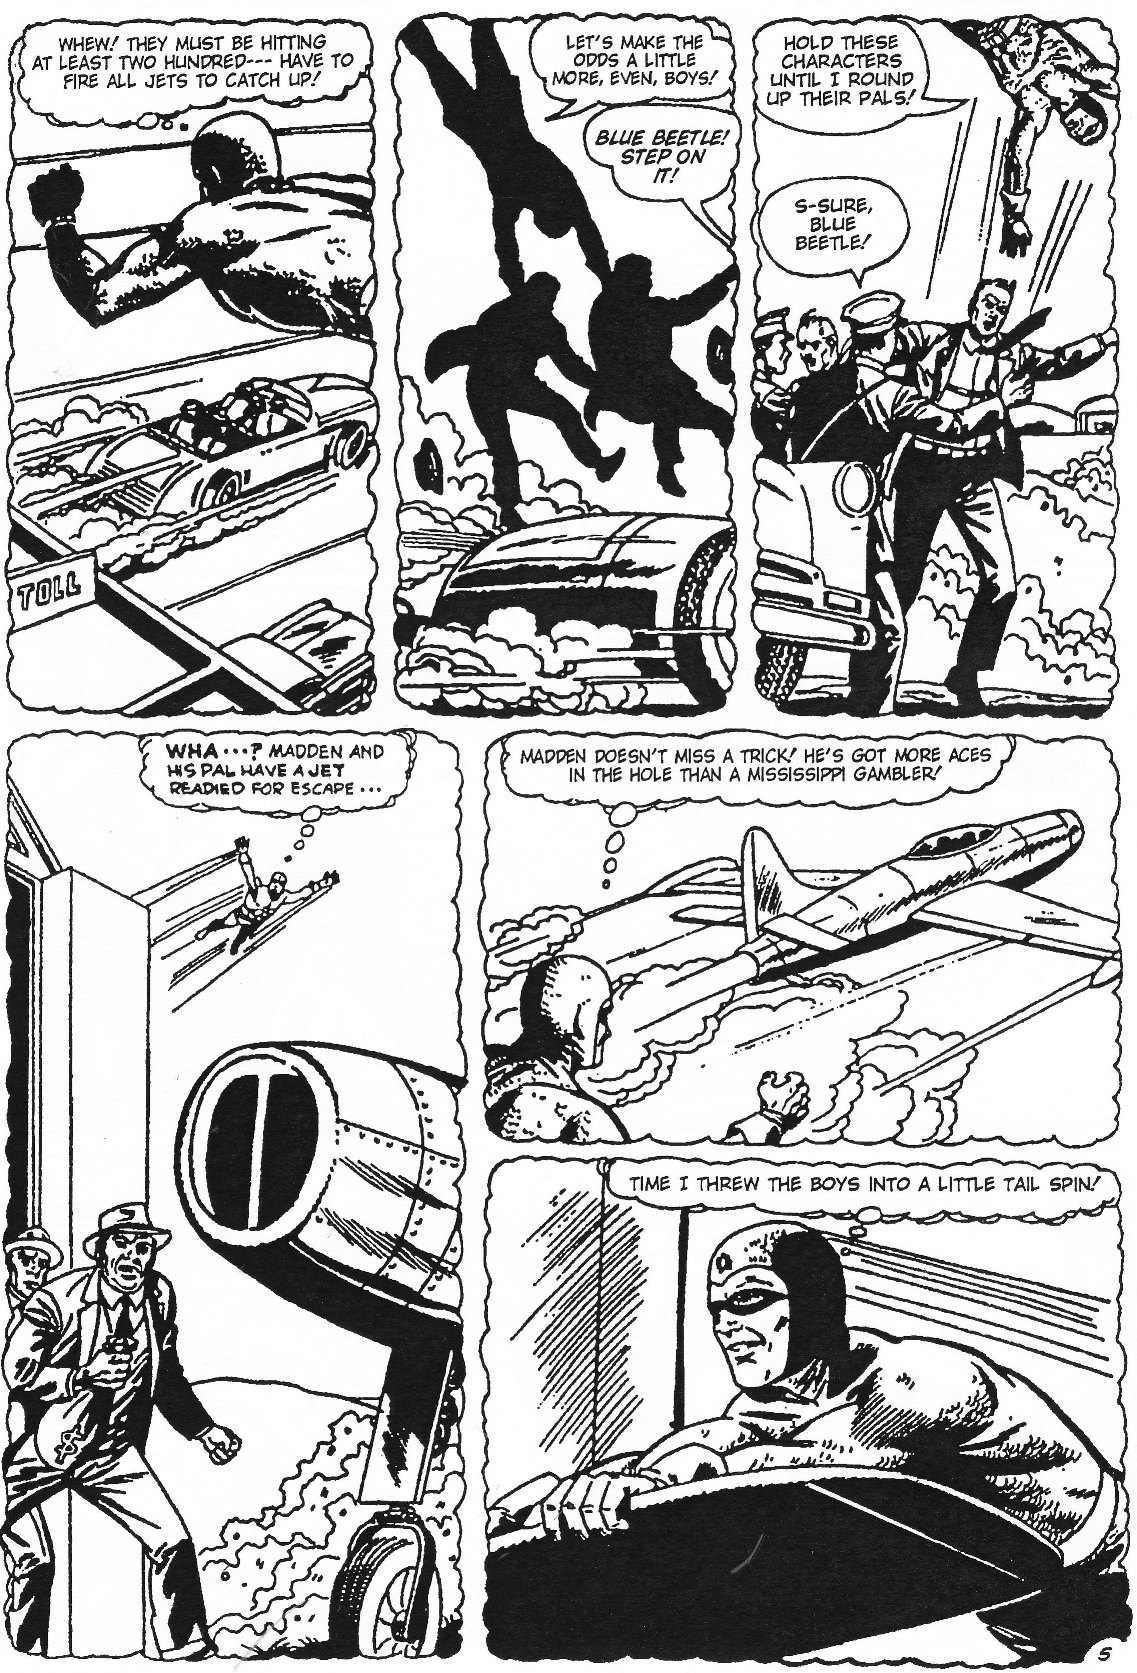 Read online Men of Mystery Comics comic -  Issue #57 - 46